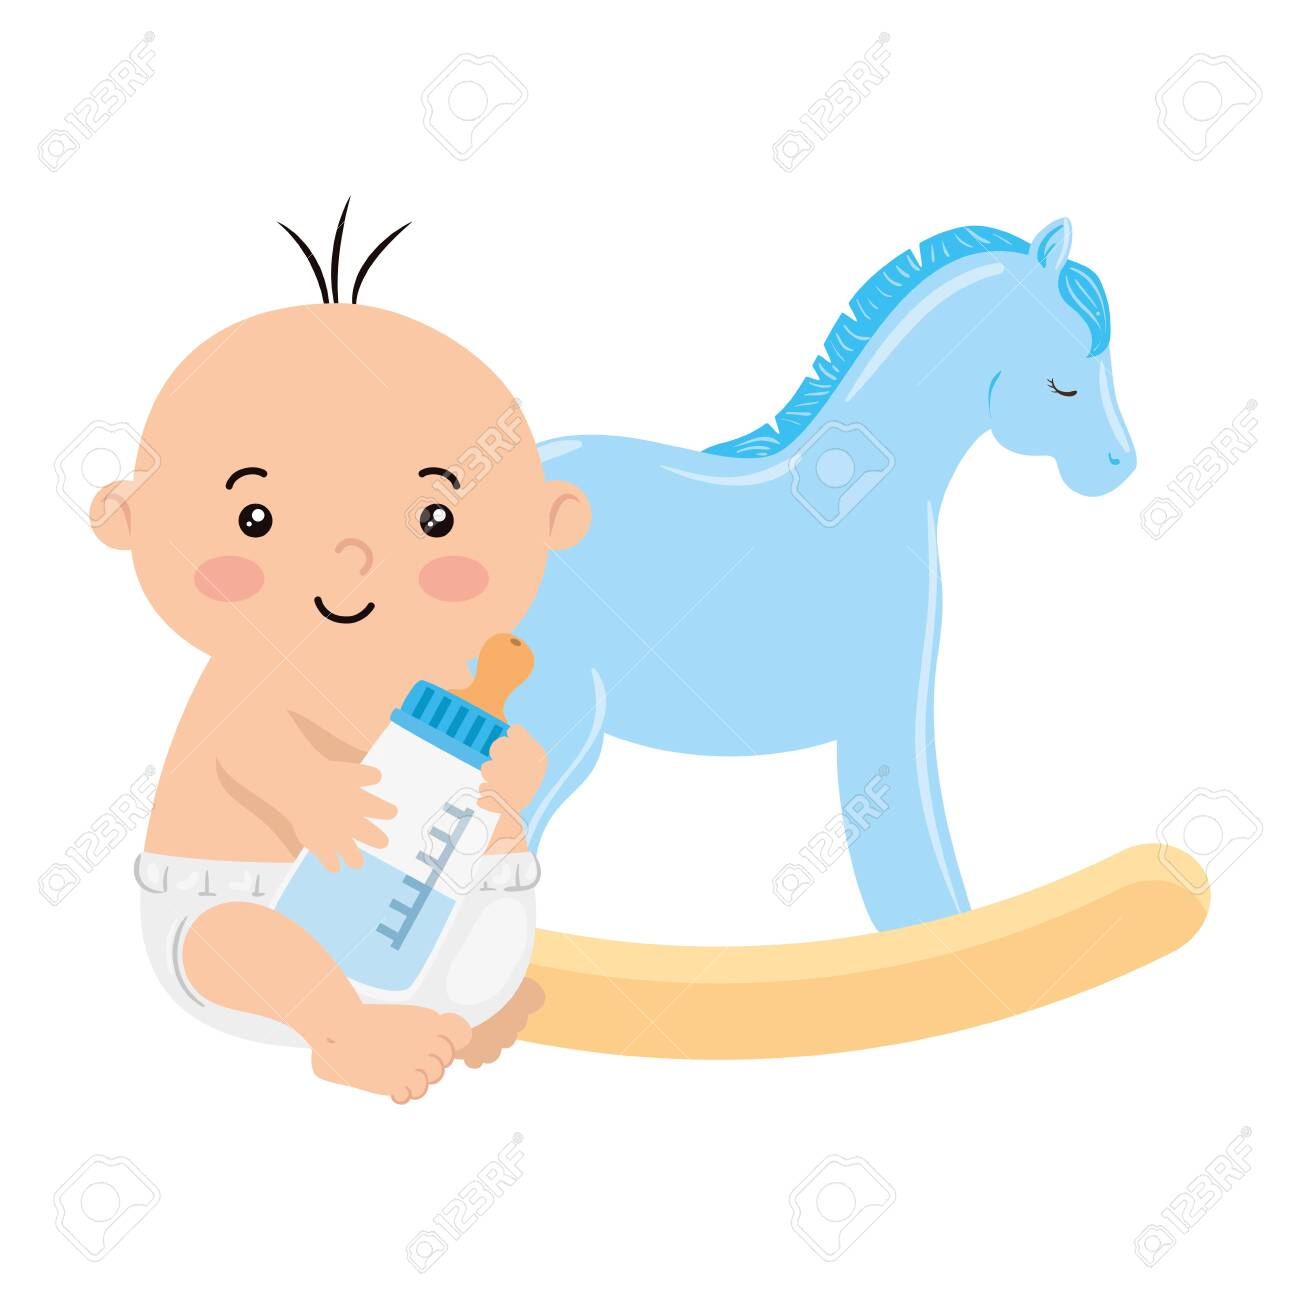 Cute Baby Boy With Bottle Milk And Wooden Horse Toy Vector Illustration Royalty Free Cliparts Vectors And Stock Illustration Image 141352233